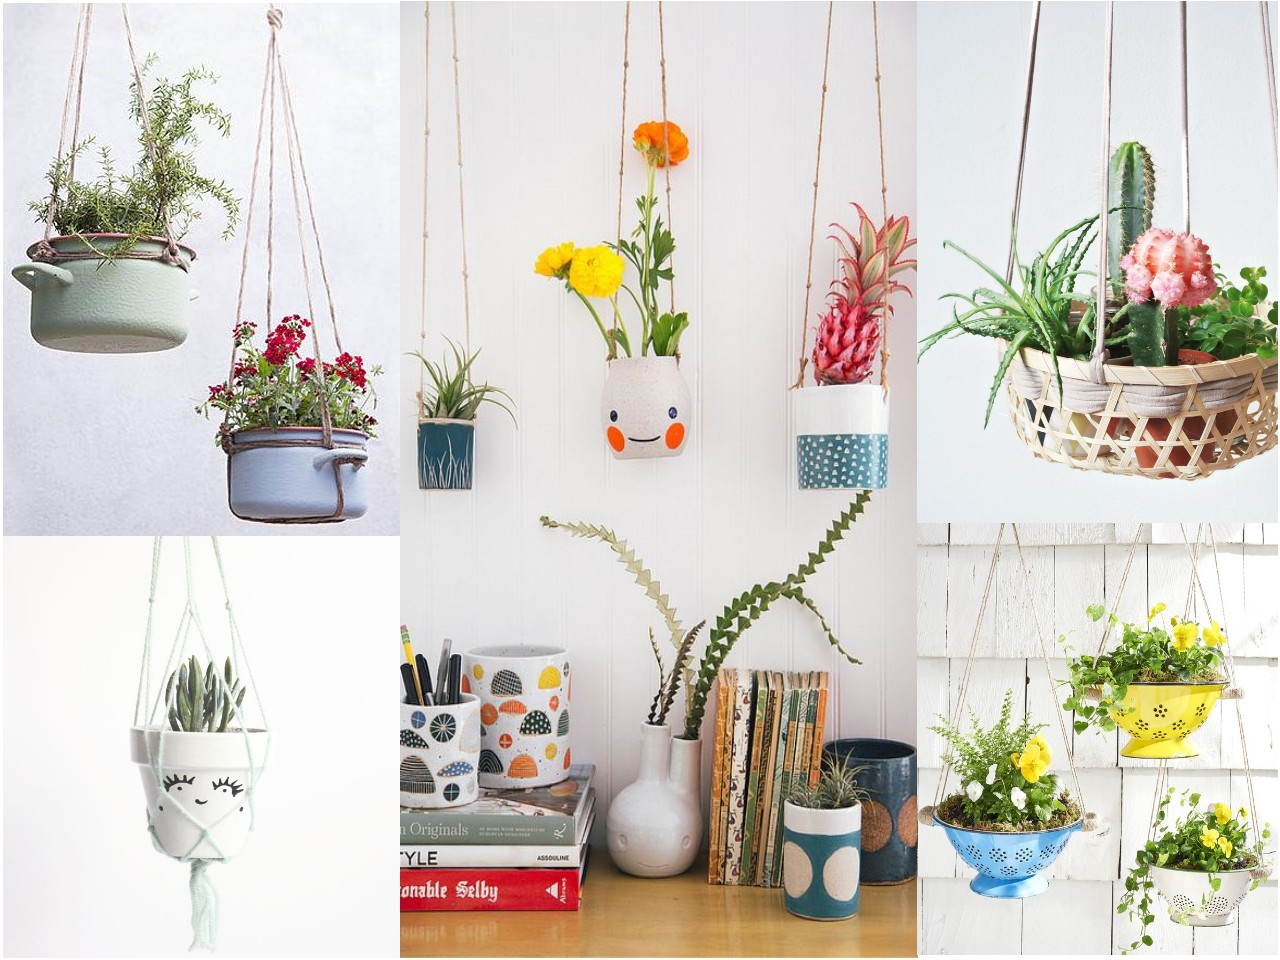 10 ideas de decoraci n con plantas colgantes - Cosas de decoracion ...